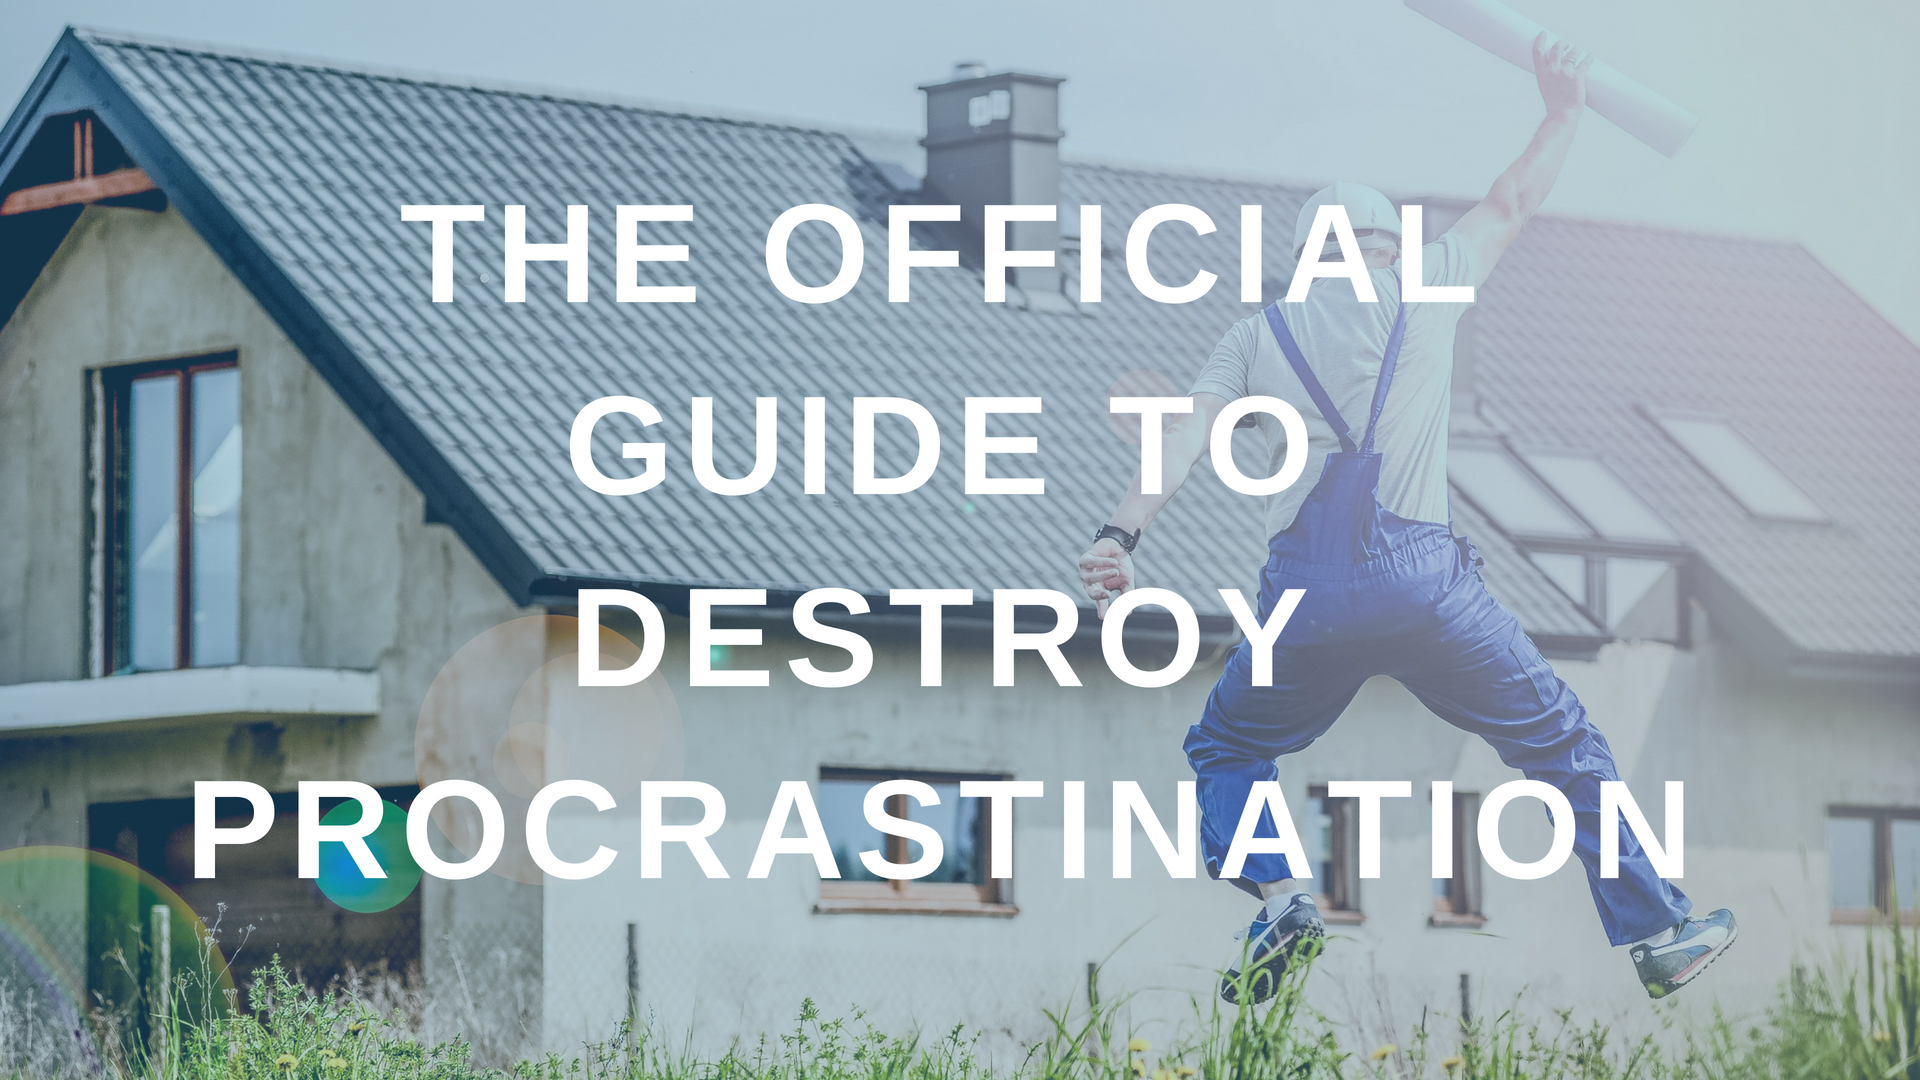 The Official Guide to Destroy Procrastination